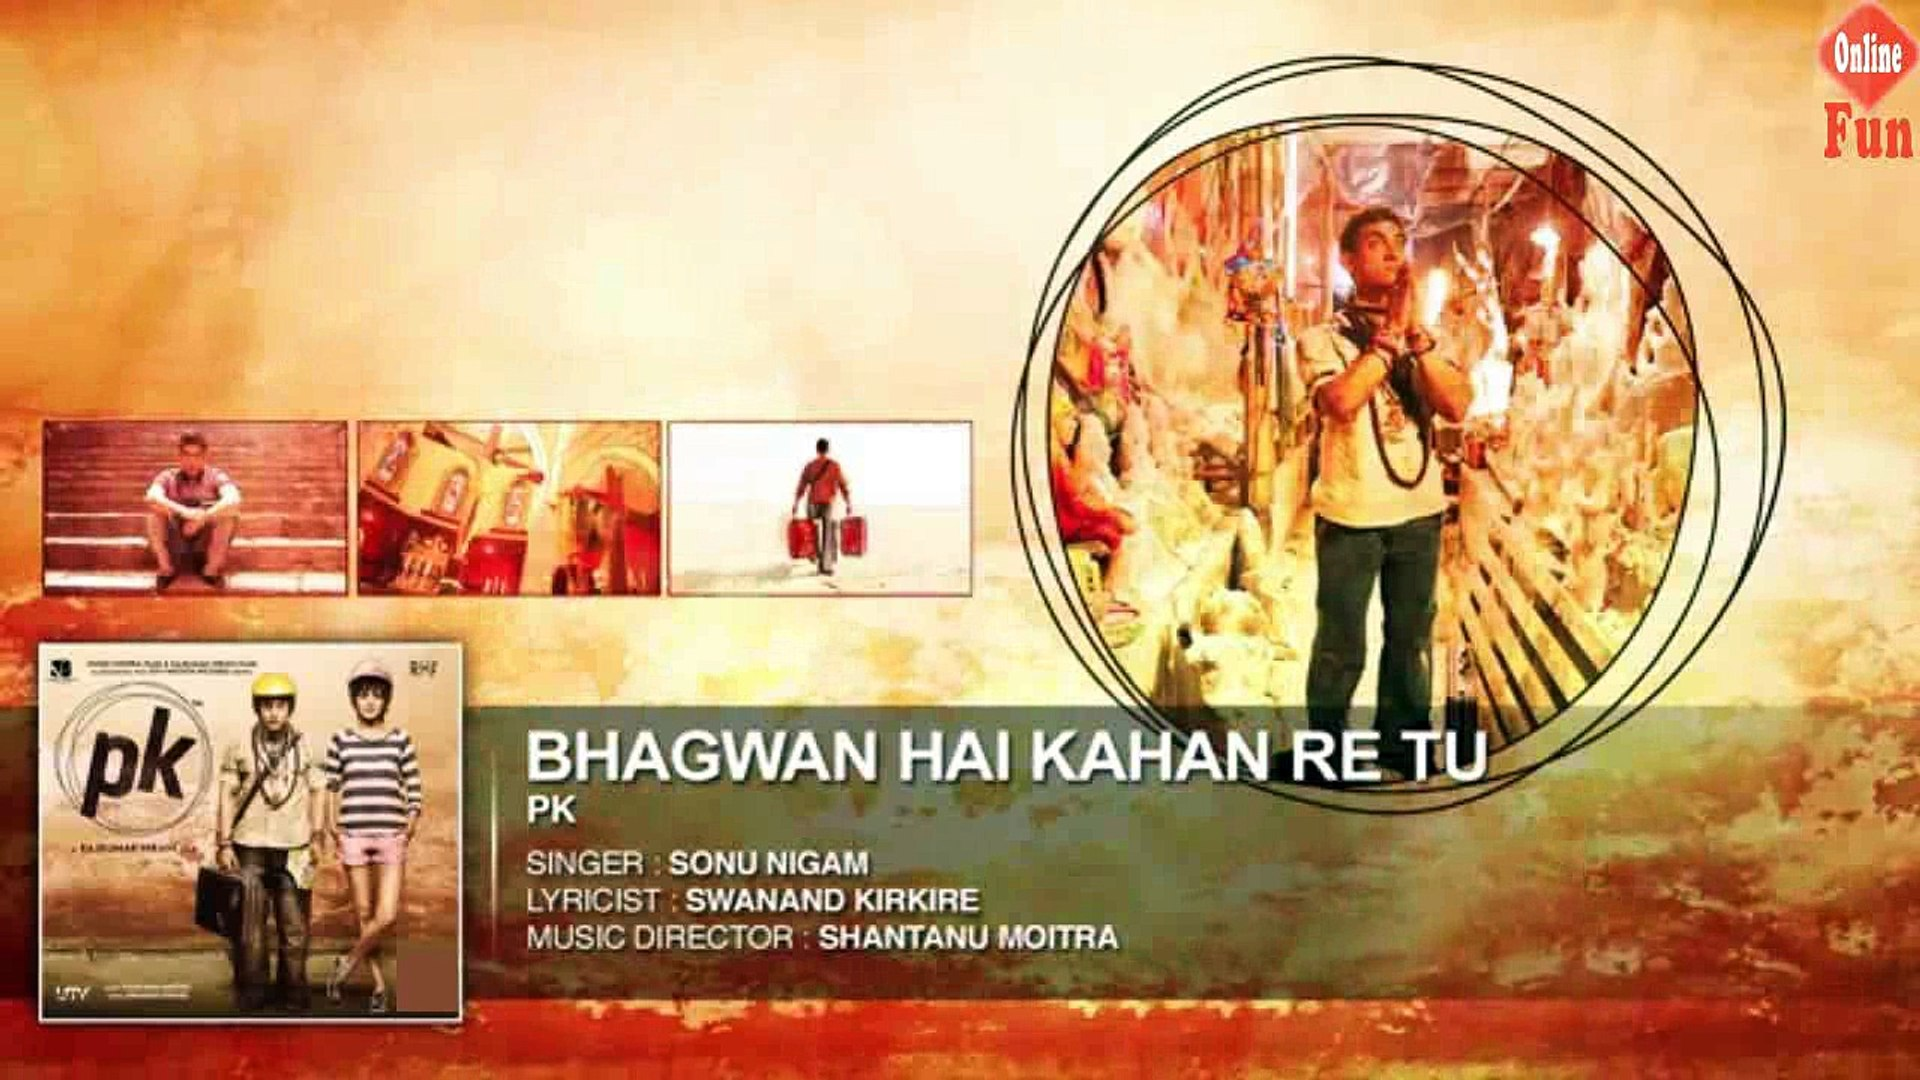 Bhagwan-Hai-Kahan-Re-Tu-FULL-AUDIO-Song--PK--Aamir-Khan--Anushka-Sharma--fun-online